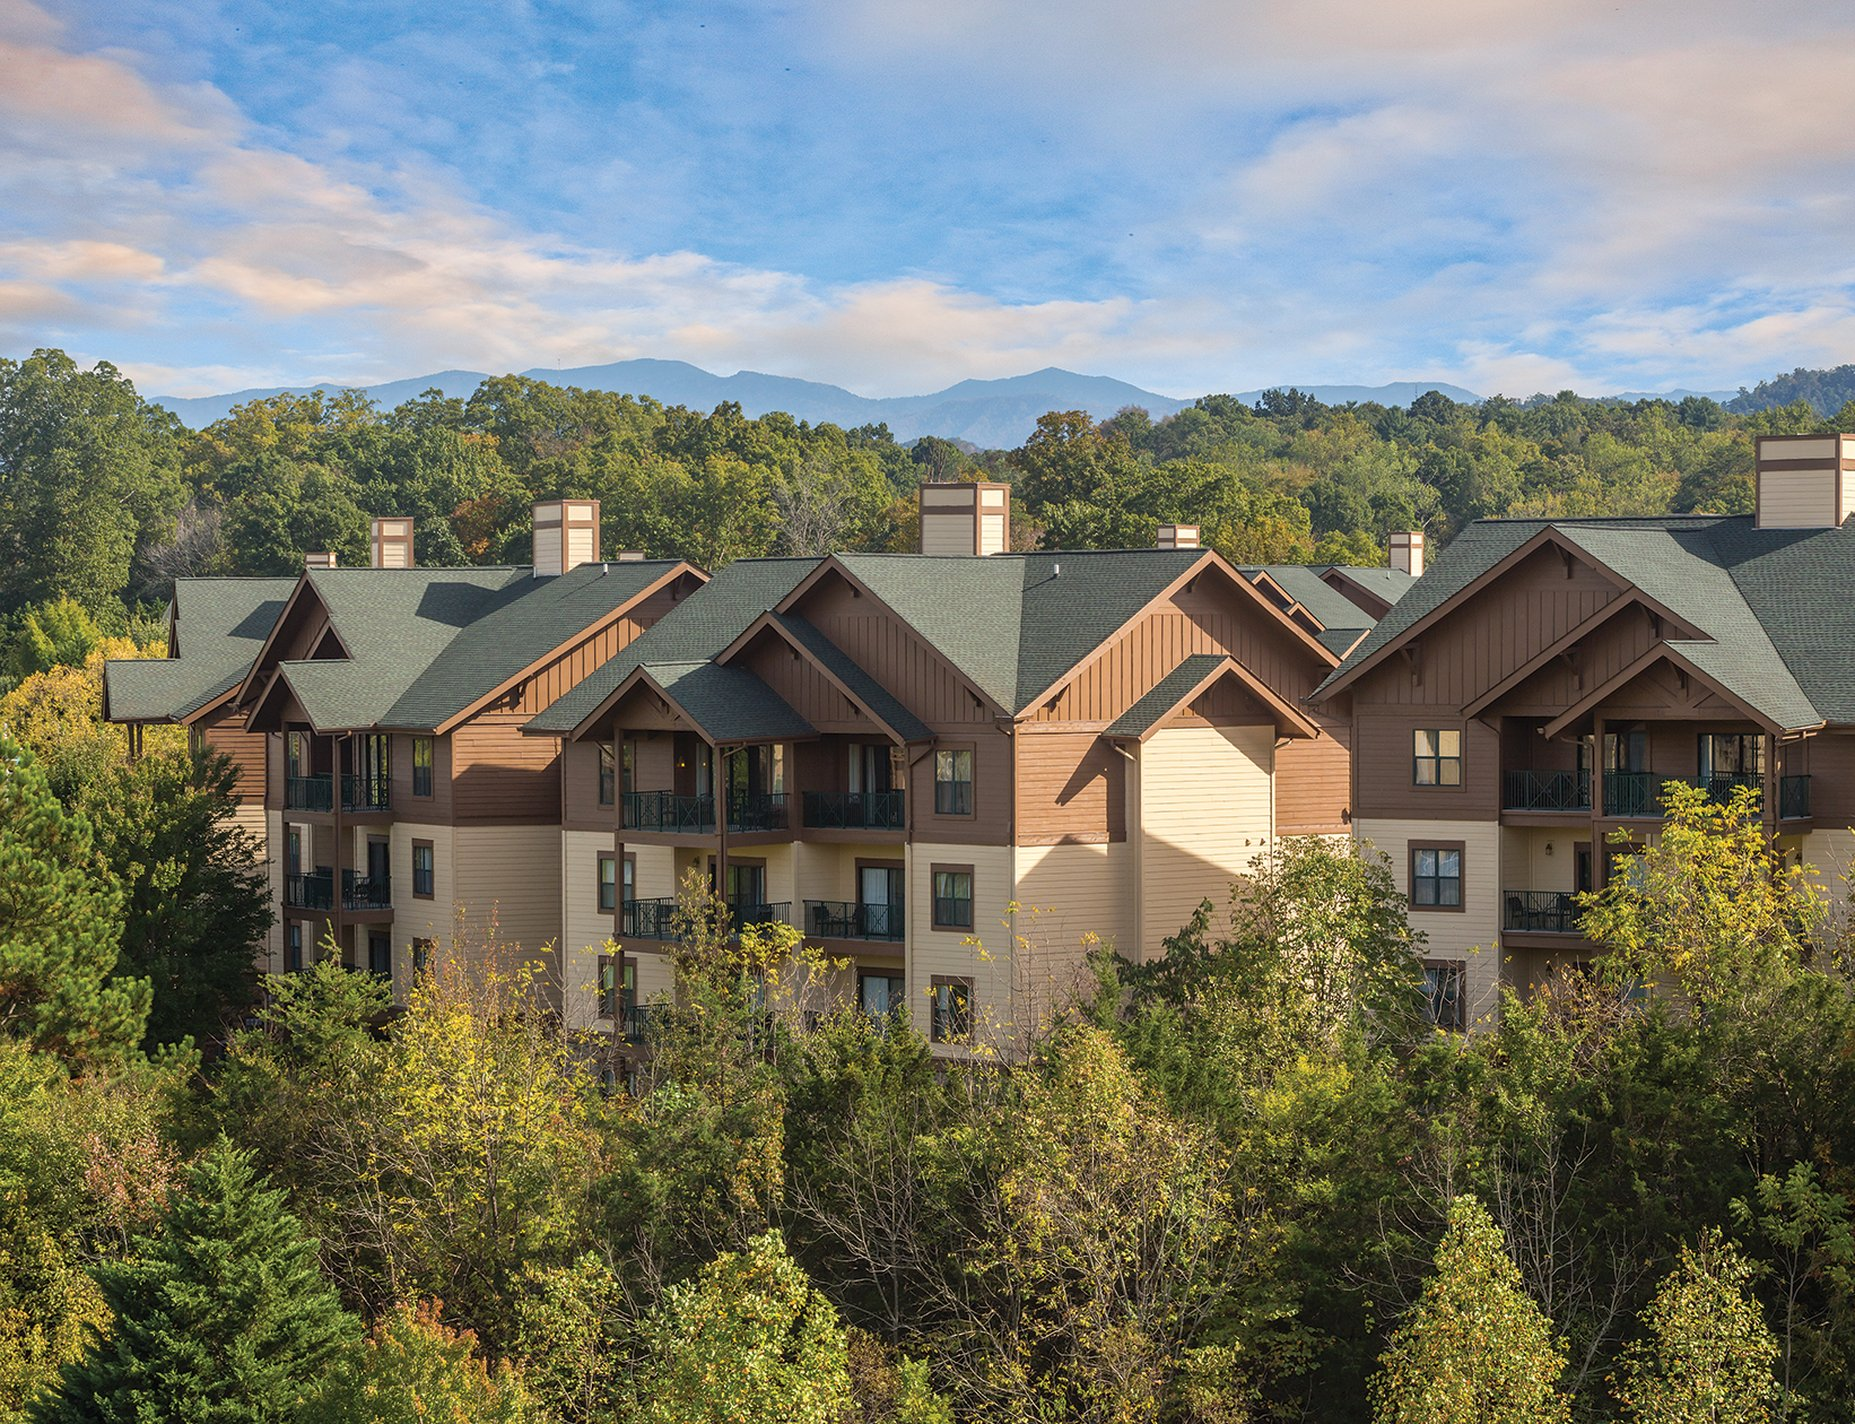 Wyndham Smoky Mountains Sevierville TN 2 Bedroom Vacation